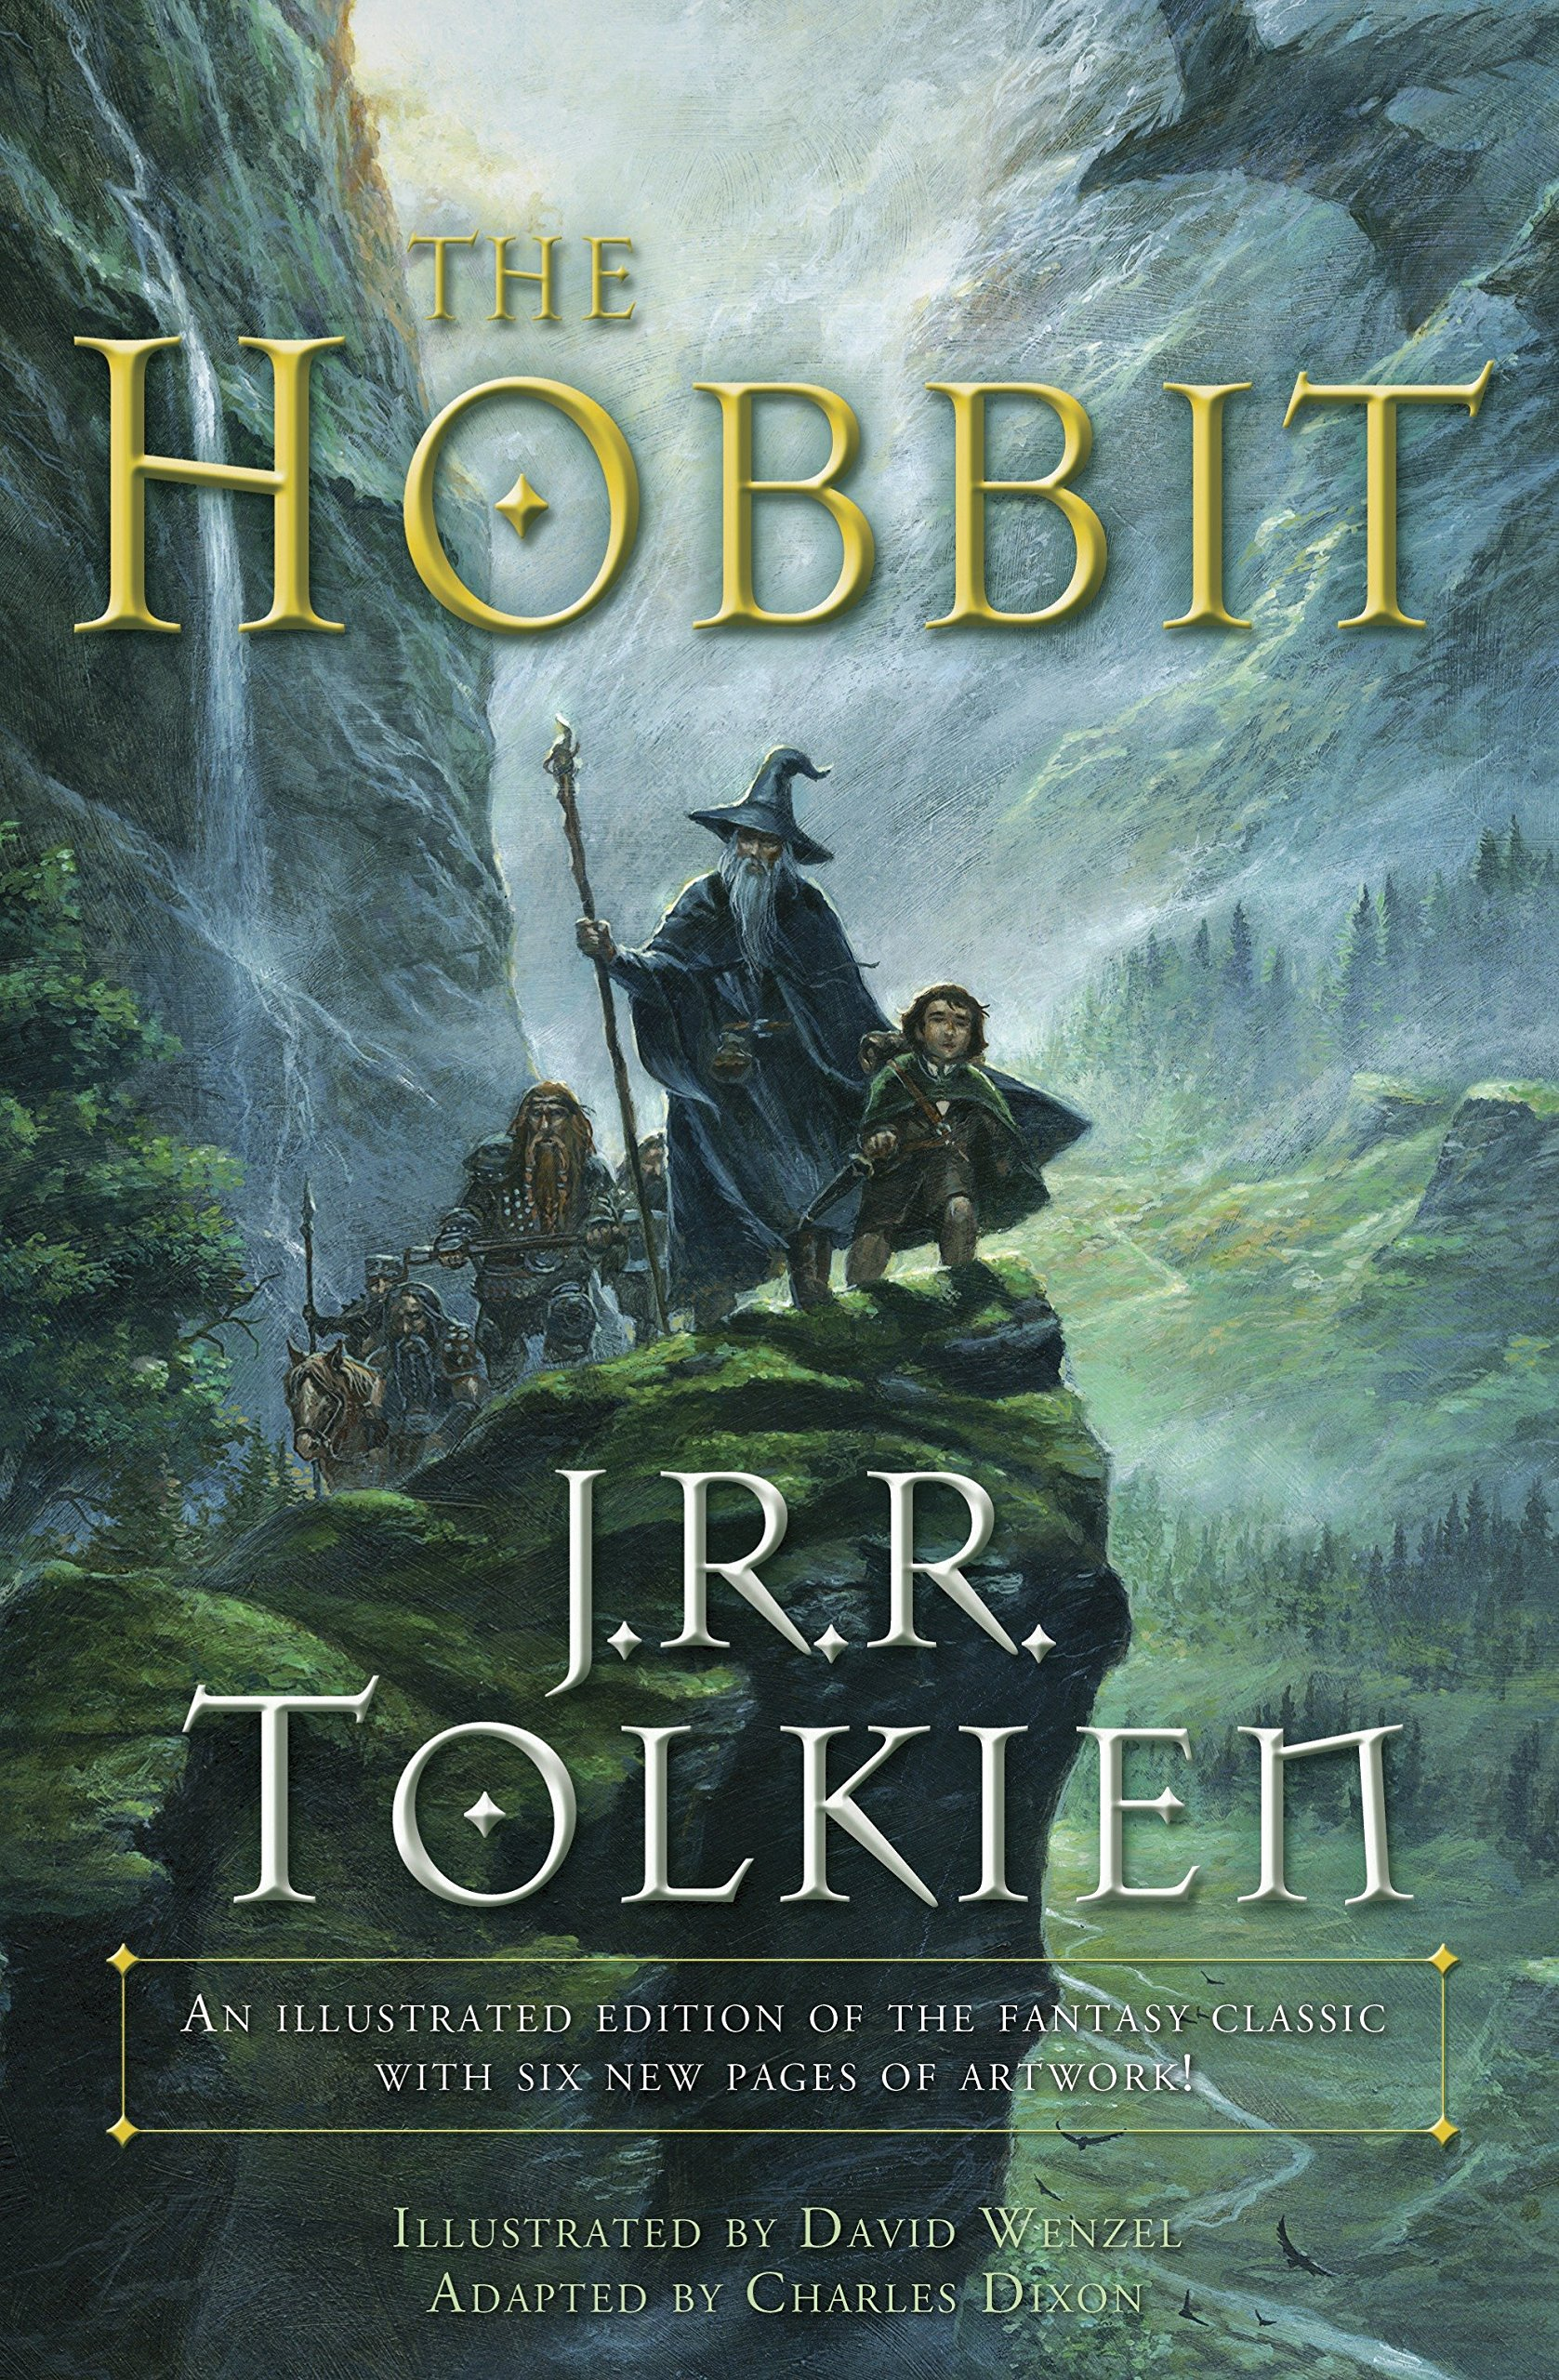 HOBBIT (GRAPHIC NOVEL) (Lord of the Rings): Amazon.es: Tolkien ...